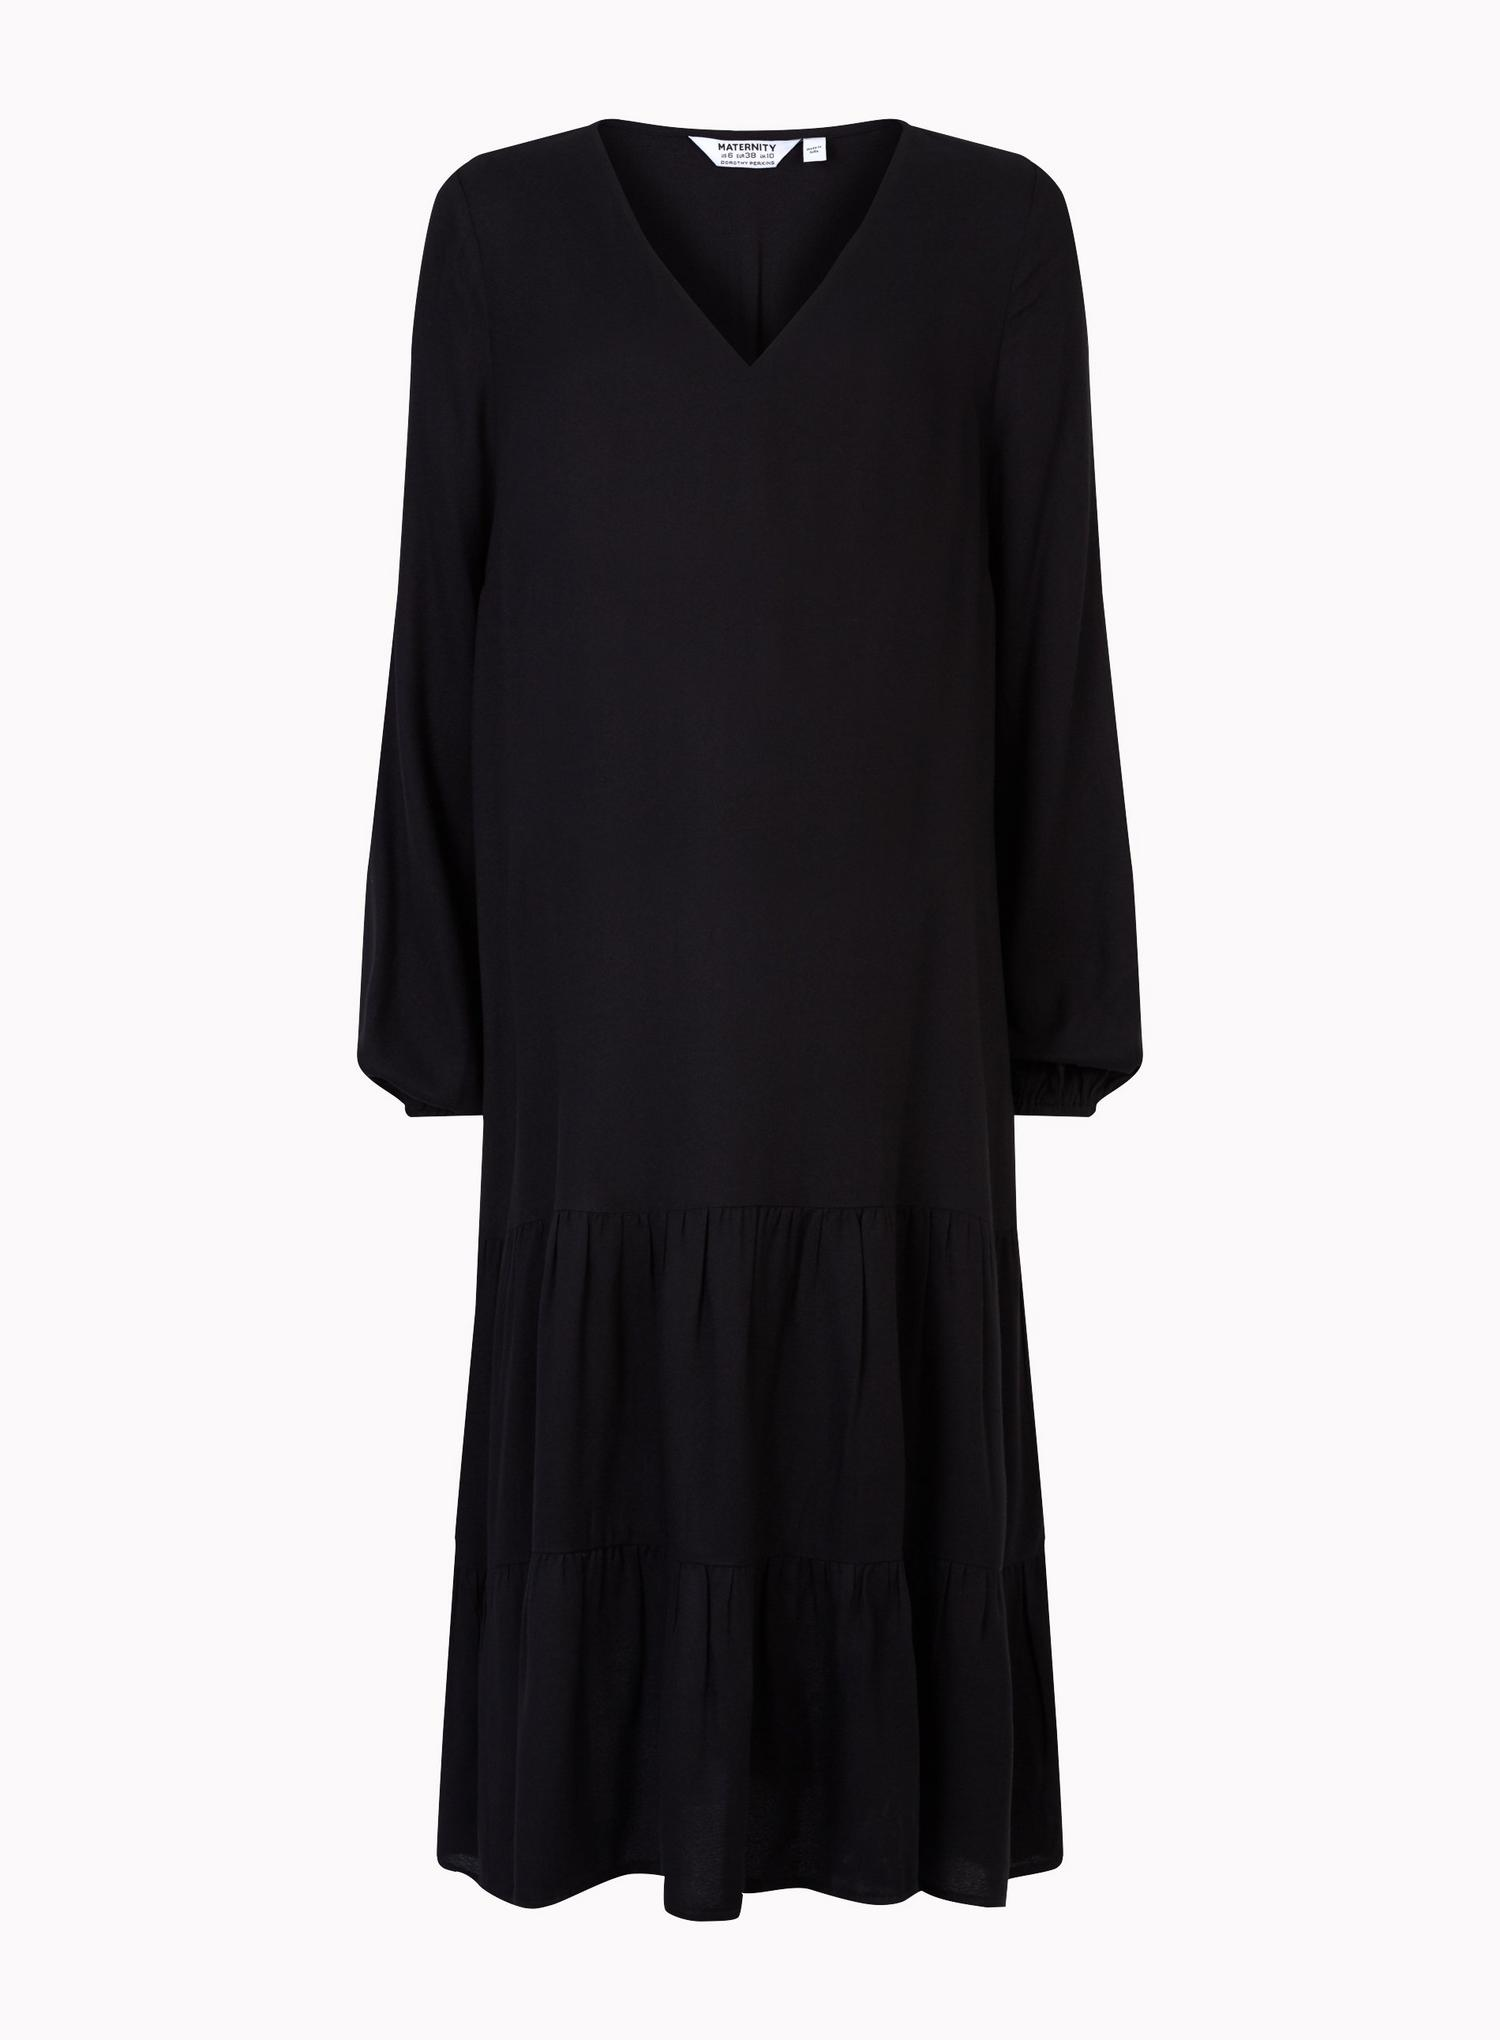 105 Maternity Black Smock Dress image number 2